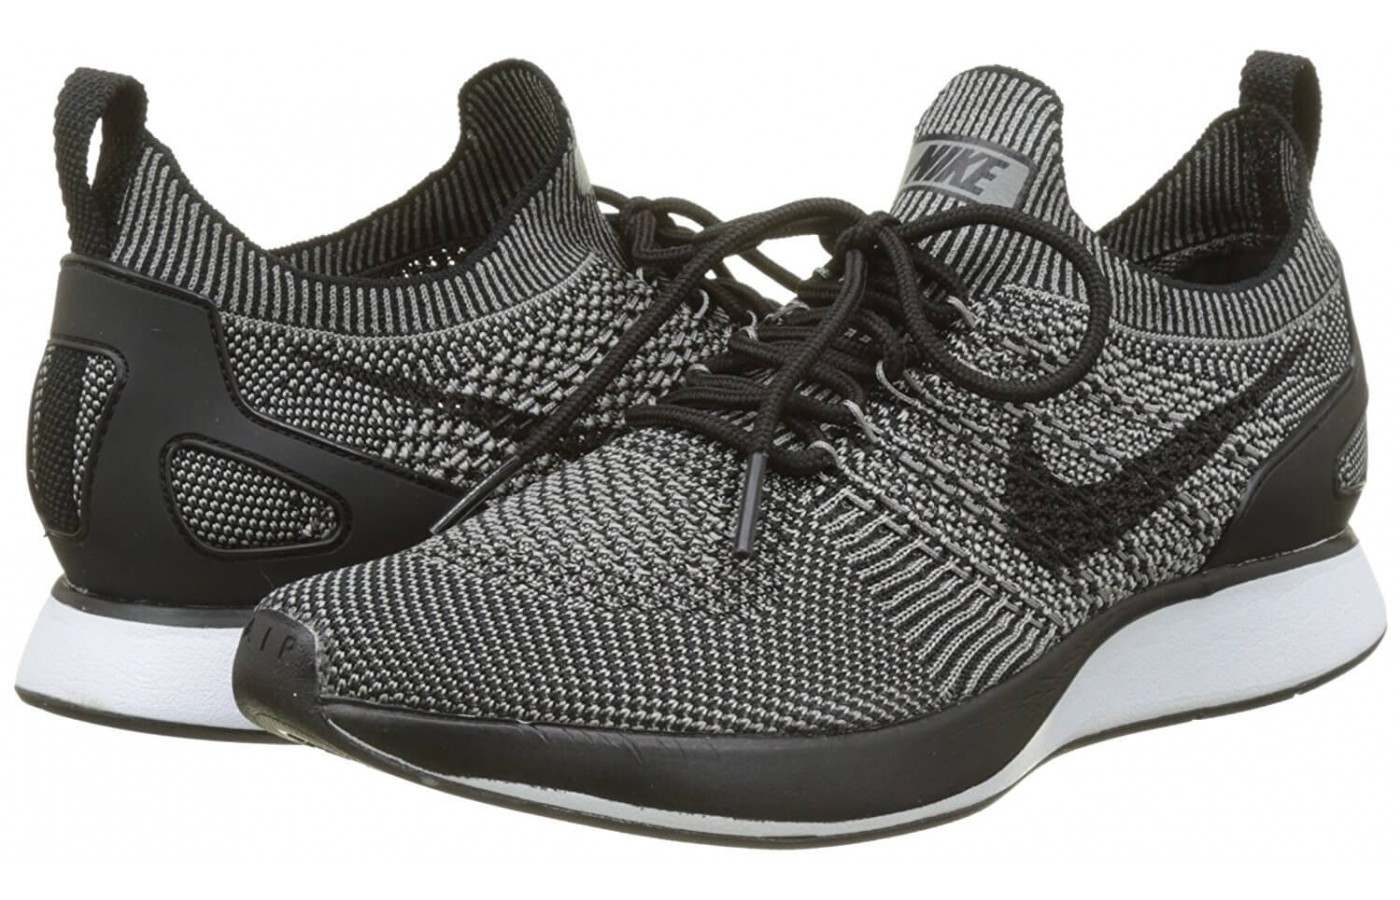 finest selection 147d0 d9758 ... The The Nike Air Zoom Mariah Flyknit Racer features a sock-like upper  ...